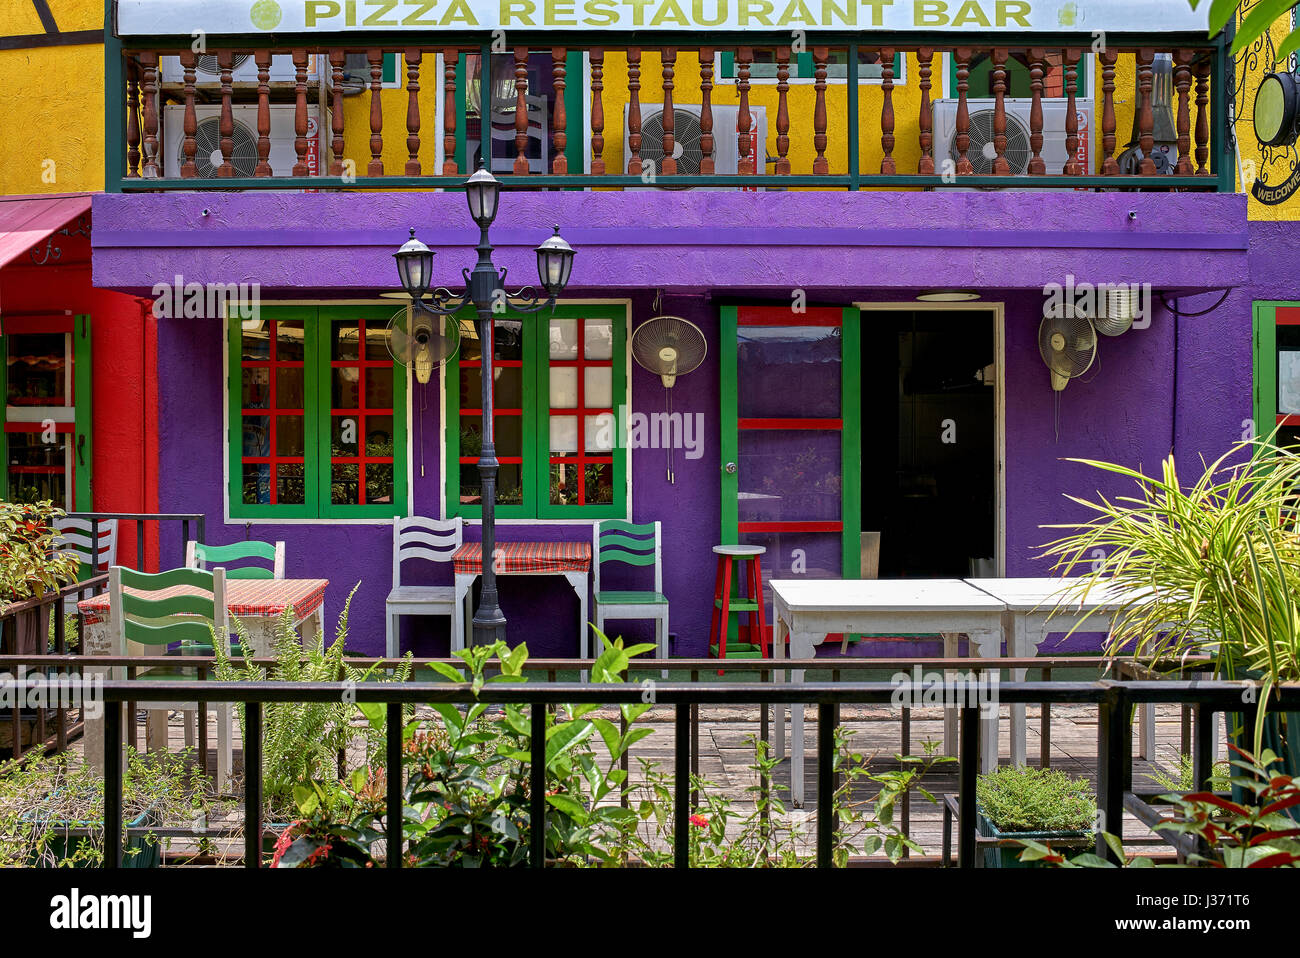 Pizza restaurant. Brightly coloured building exterior. - Stock Image